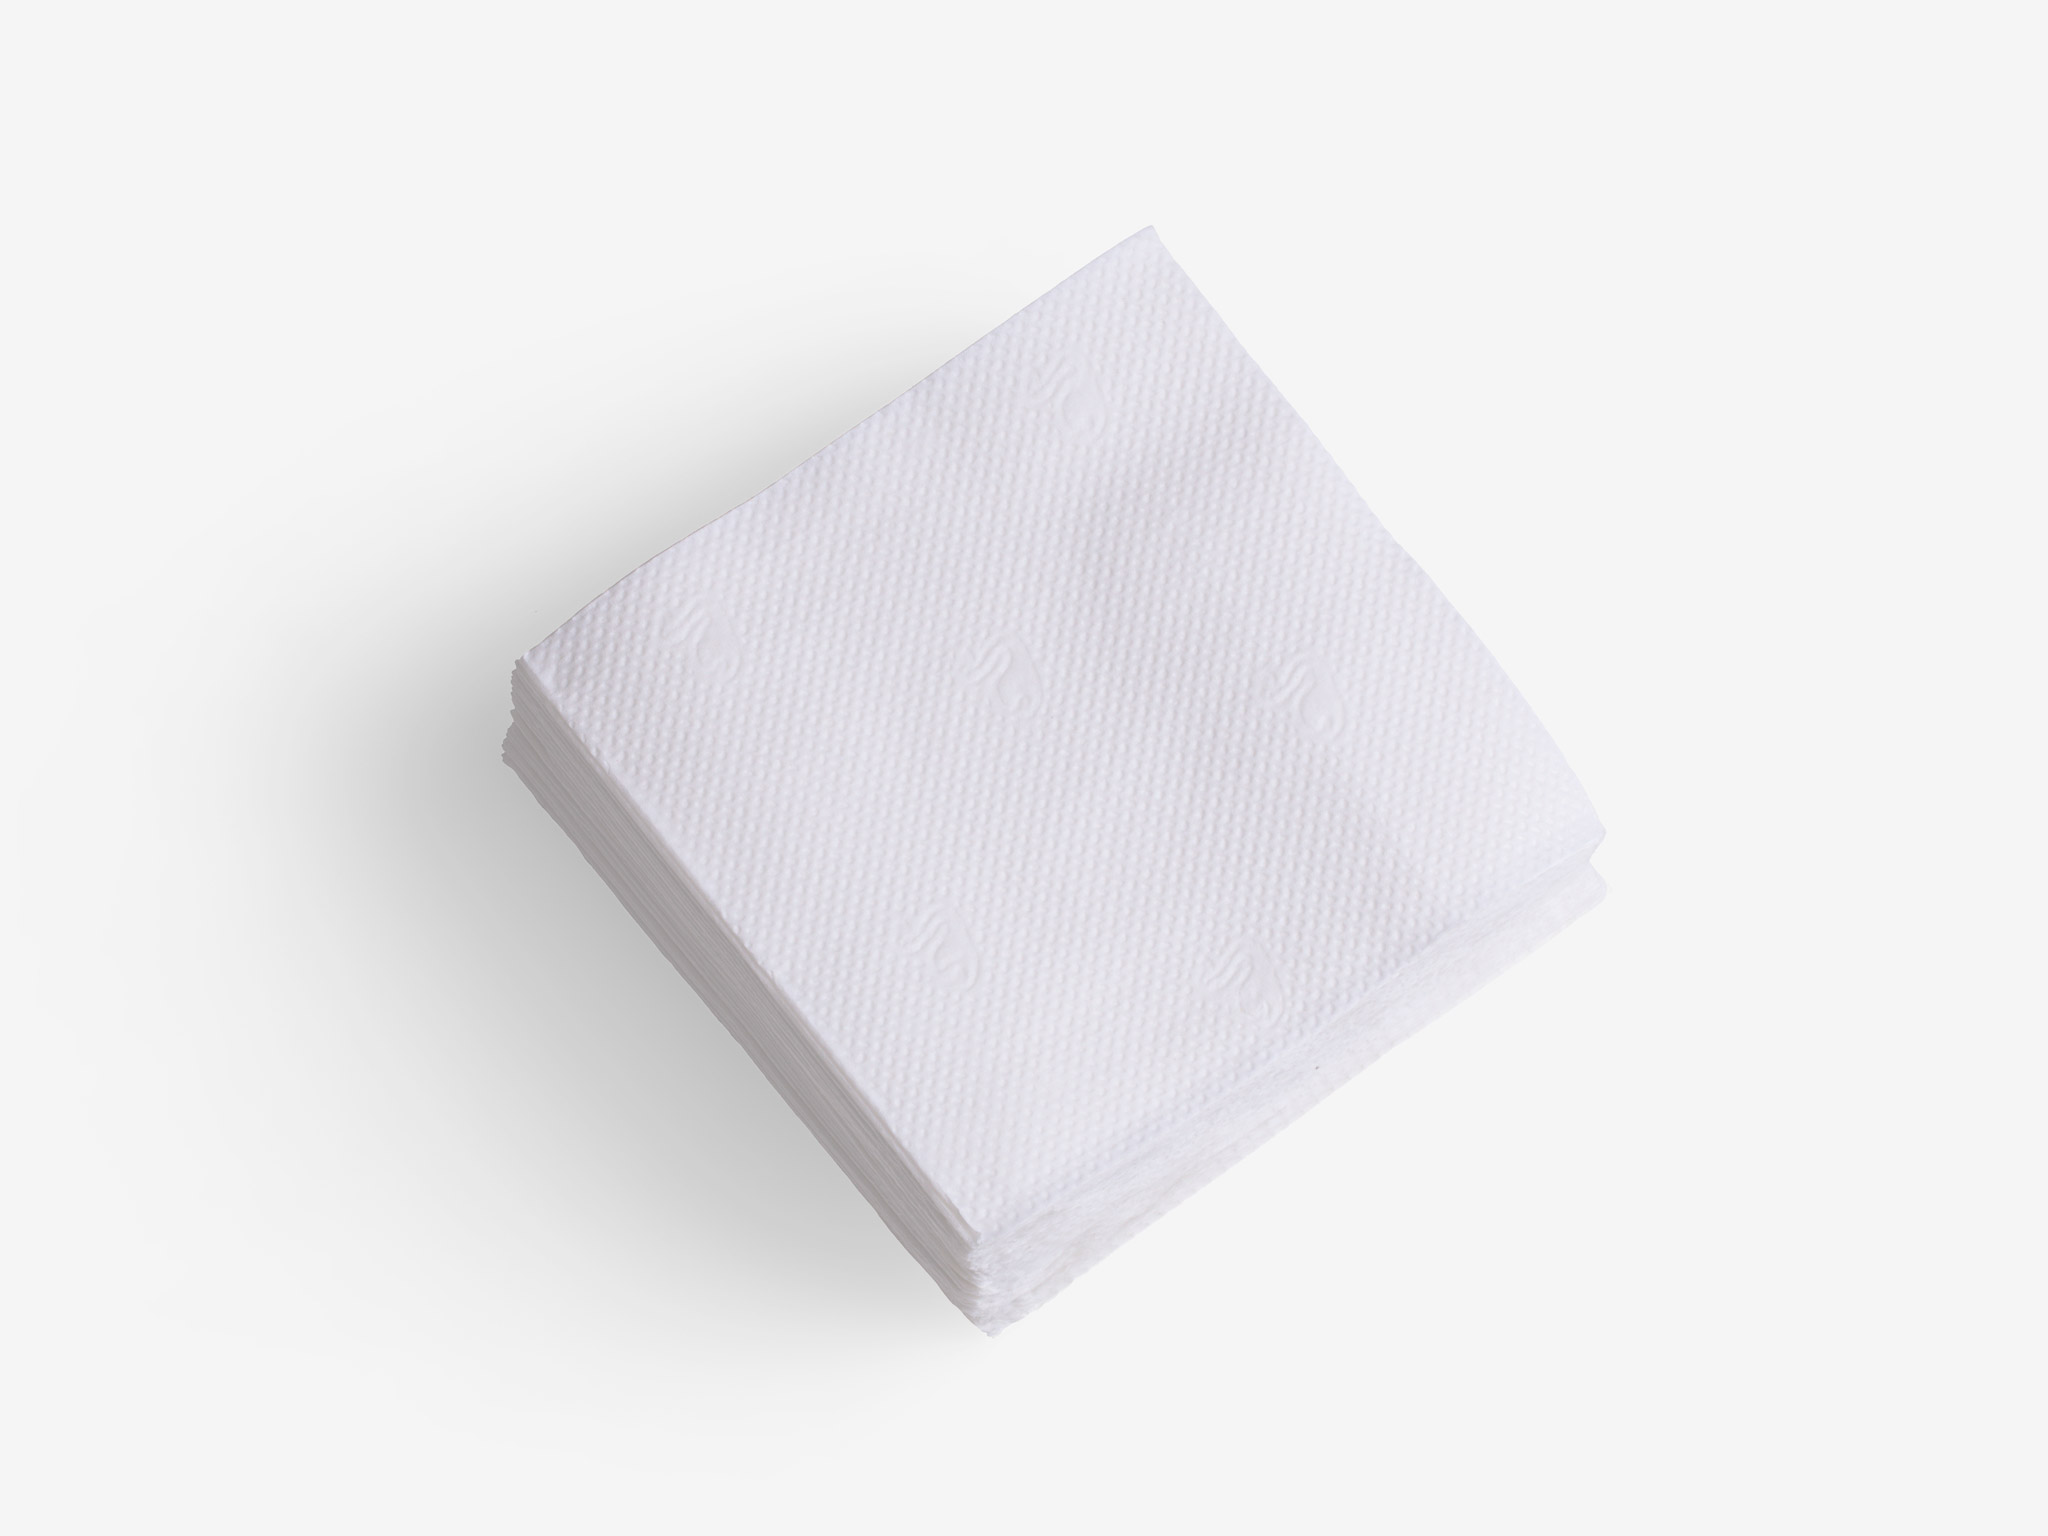 Napkin image with transparent background